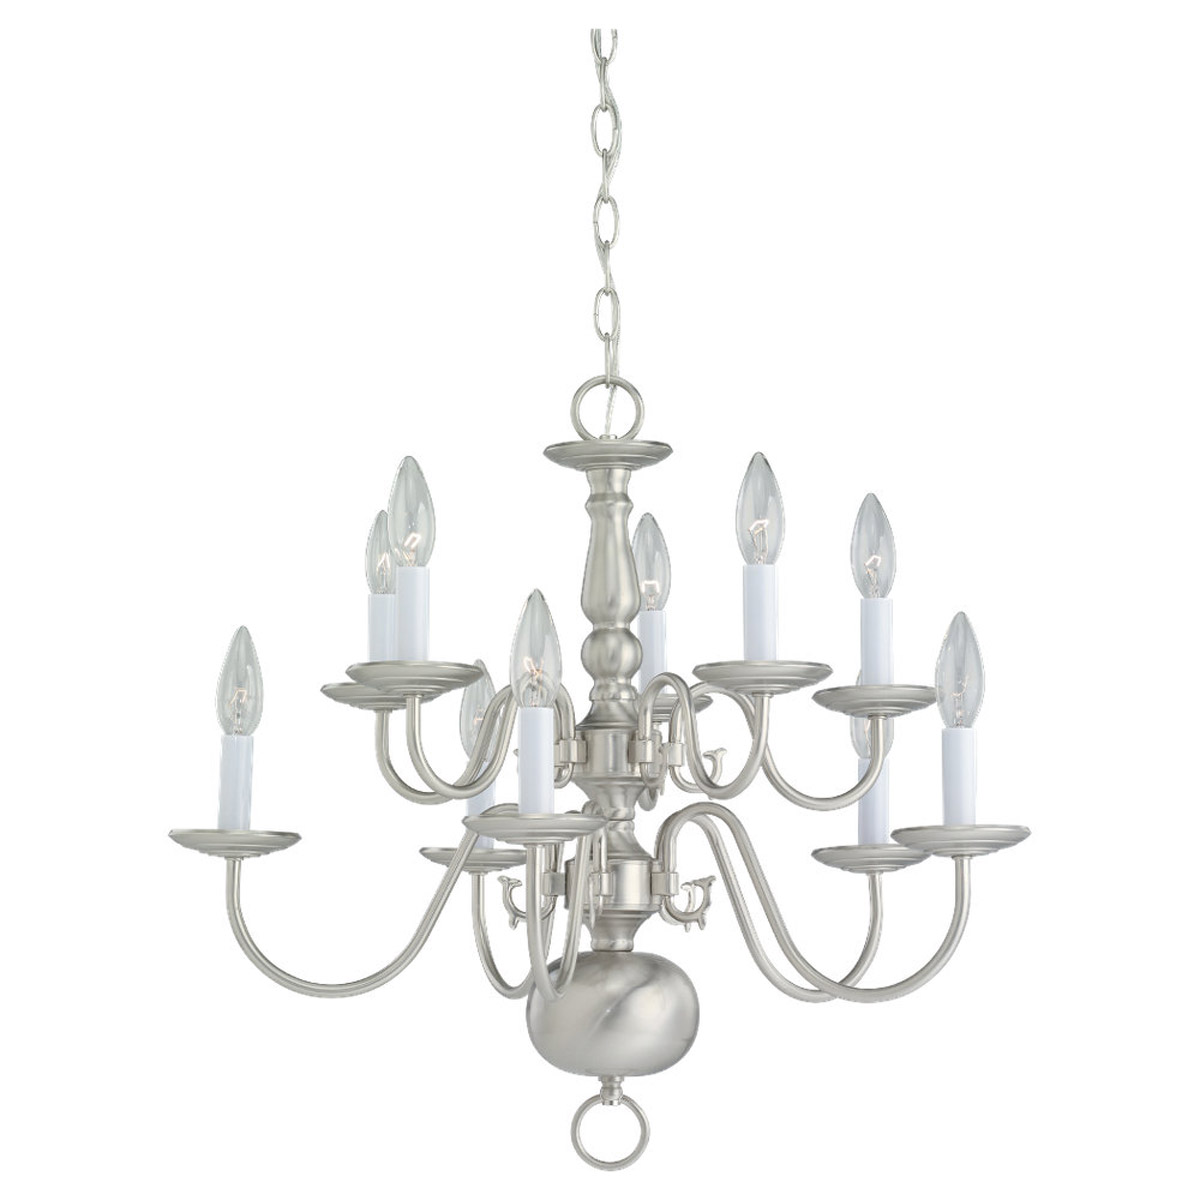 Sea Gull Lighting Traditional 10 Light Chandelier in Brushed Nickel 3413-962